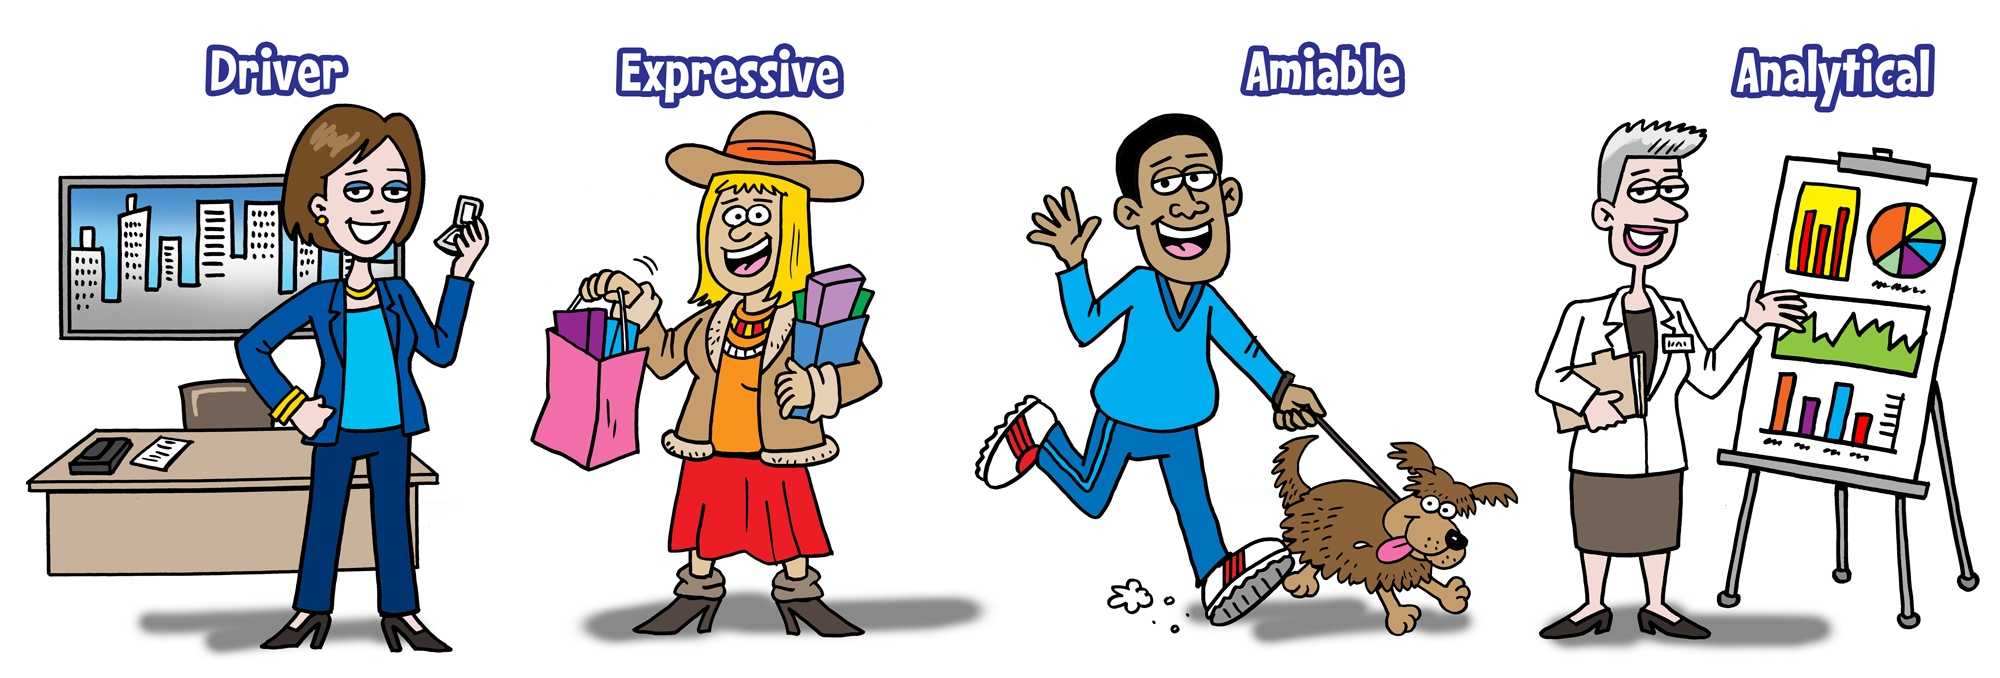 4-personality-styles-cartoon